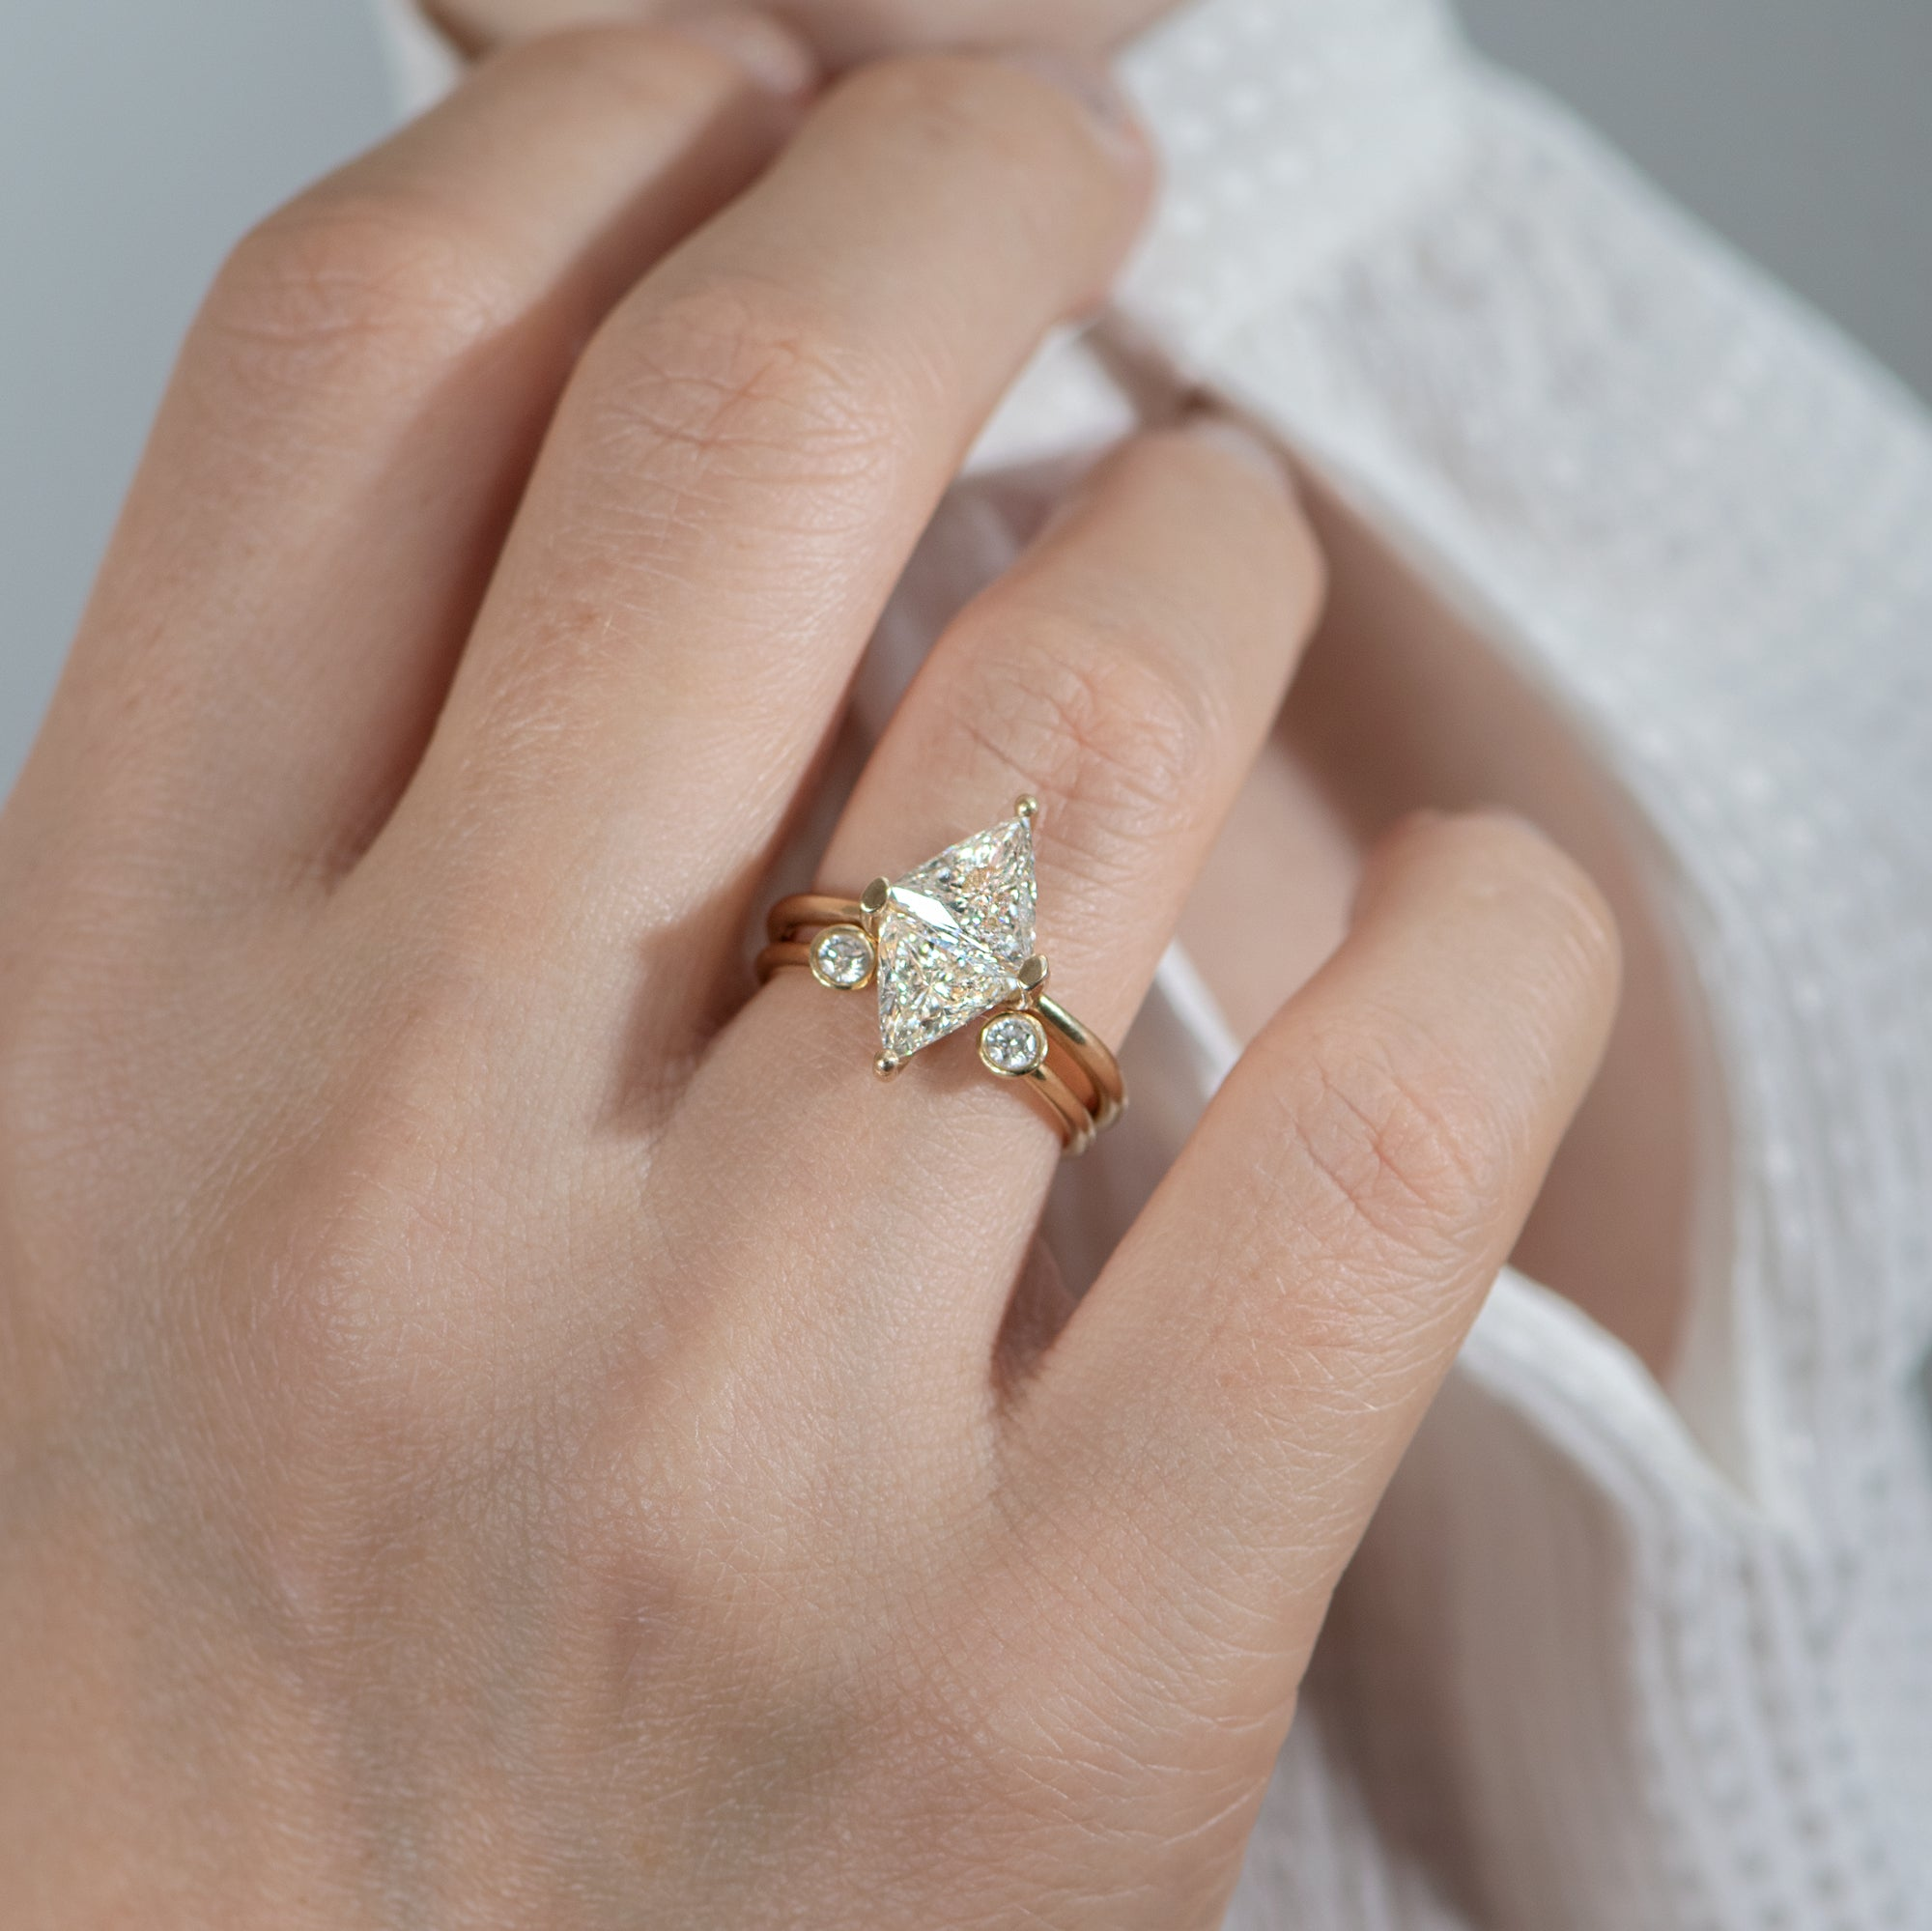 Diamond-Rhombus-Engagement-Ring-with-Triangle-Cut-Diamonds-top-shot-on-set